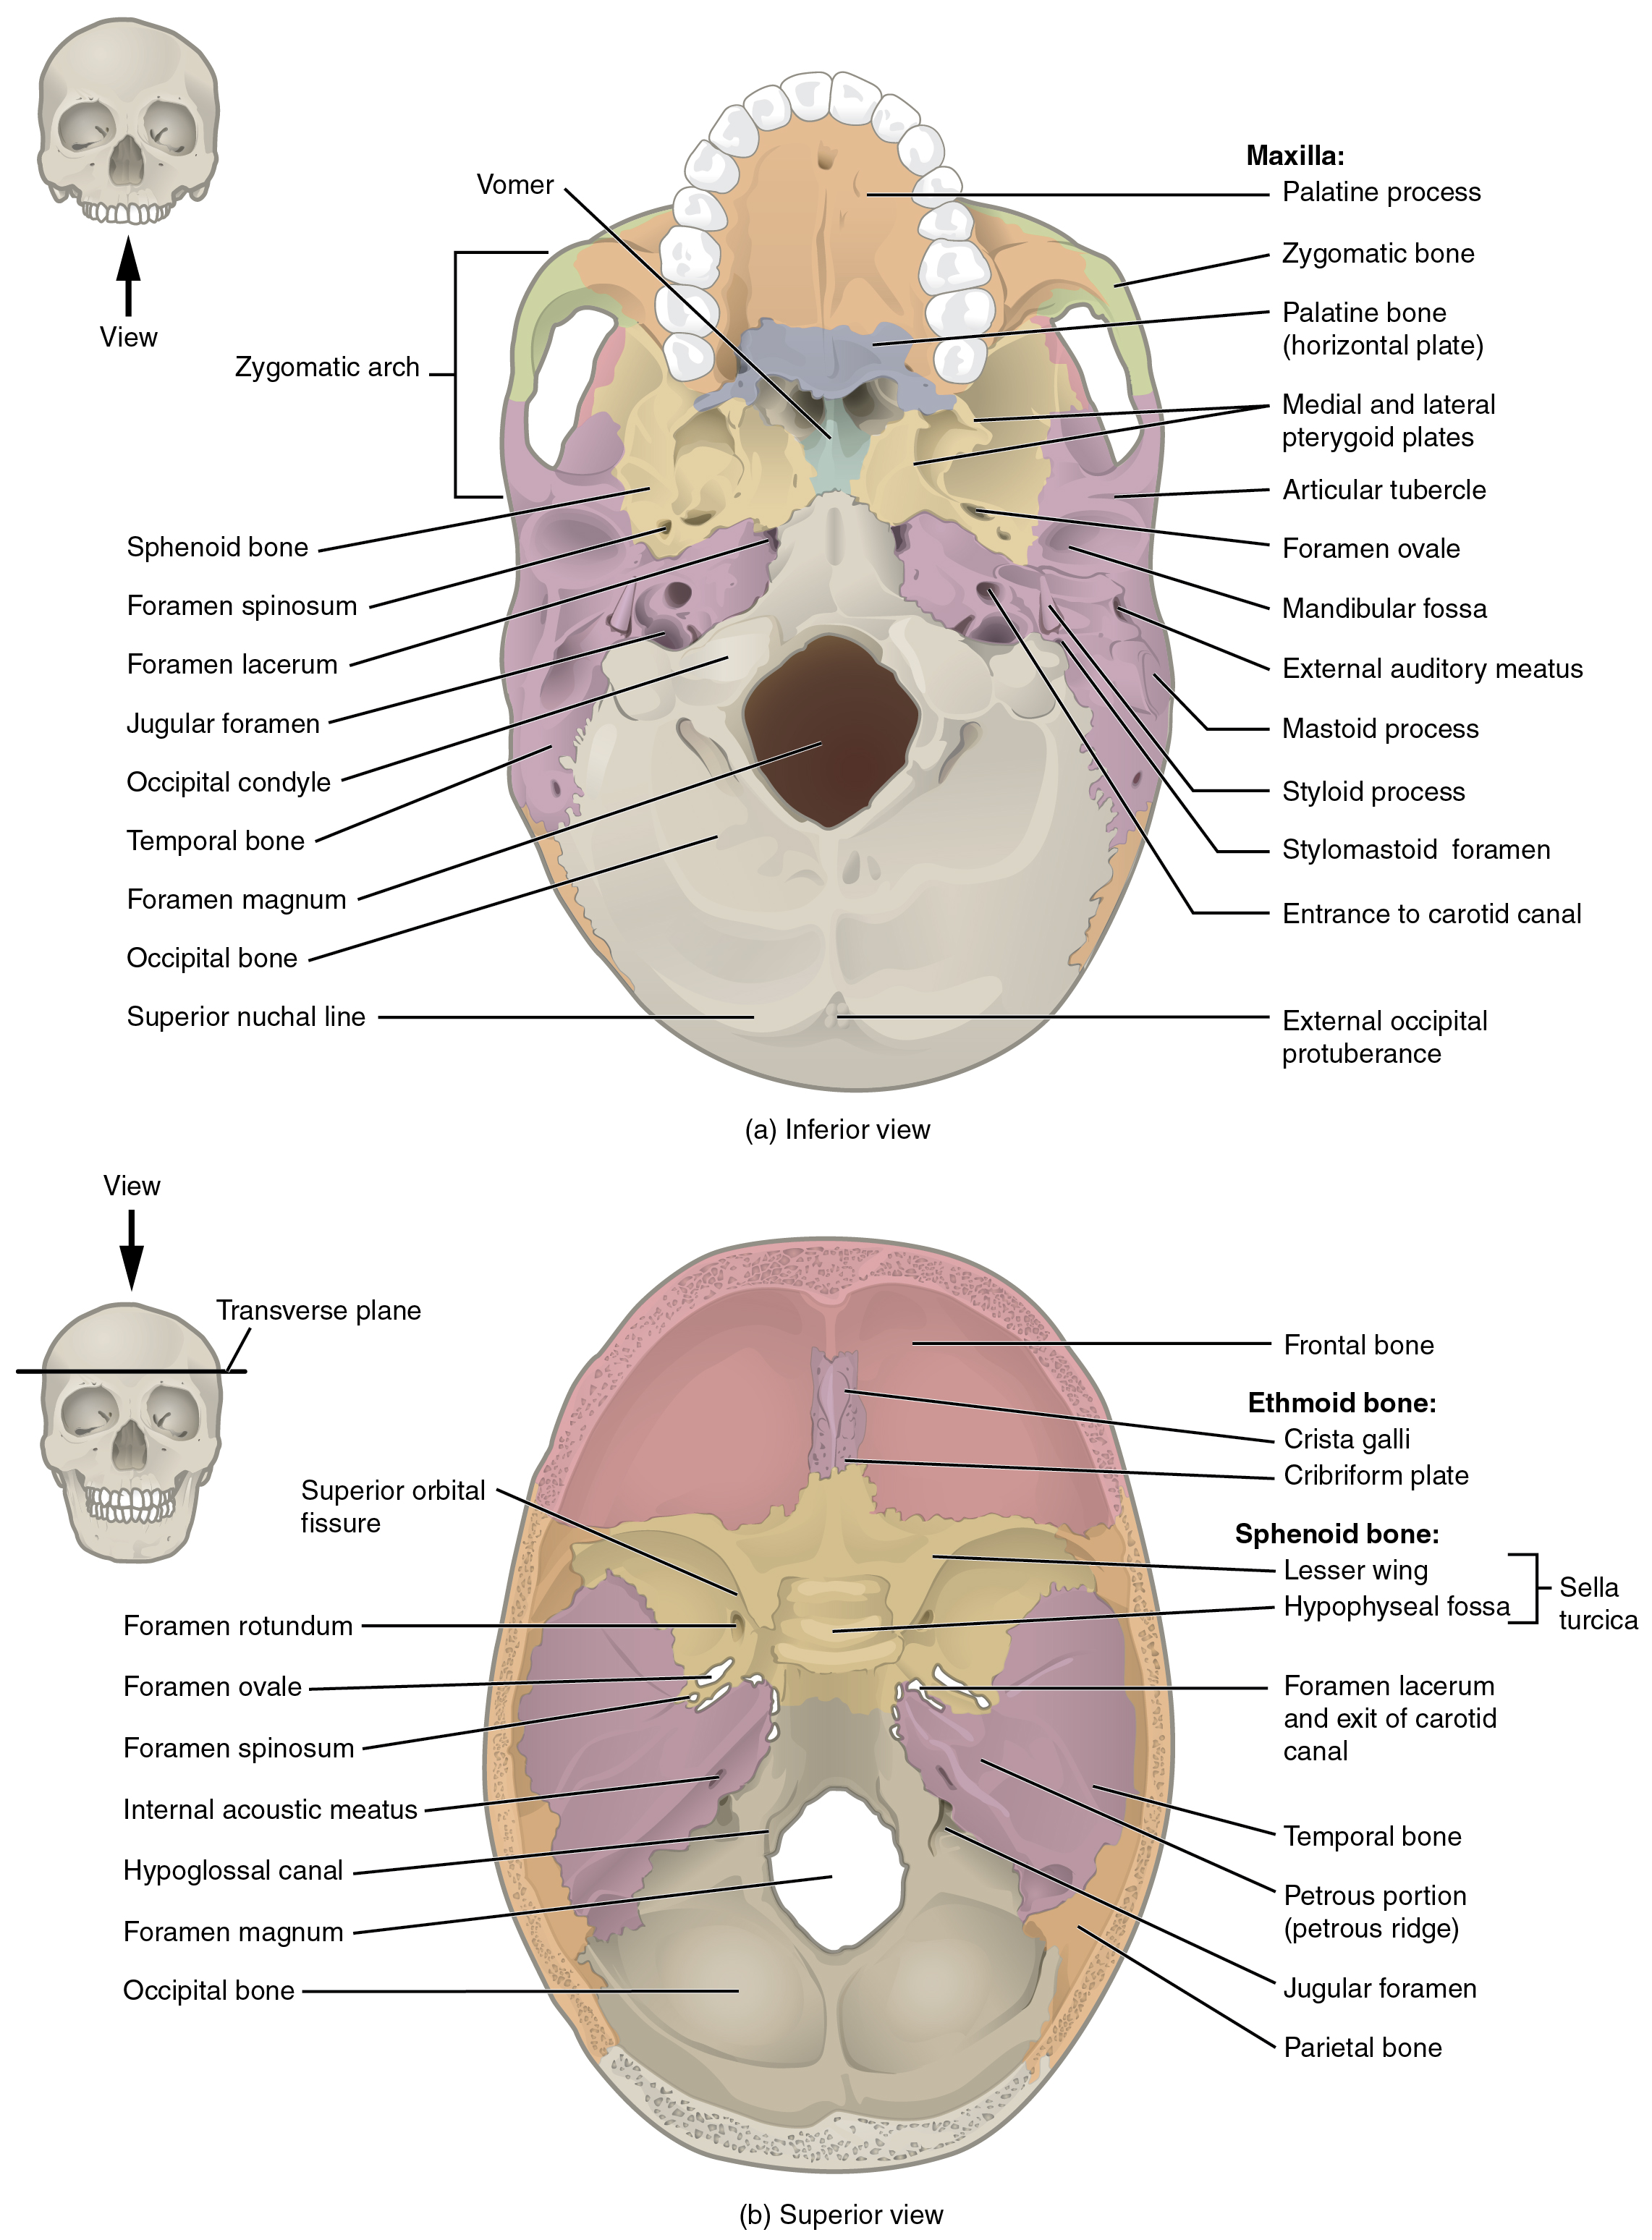 Interior Mastoid Bone Interior besides M46344 together with Know About Seizures In Children also Inferior Anatomy Of Skull also Paranasal Sinuses. on base of skull labeling exercise